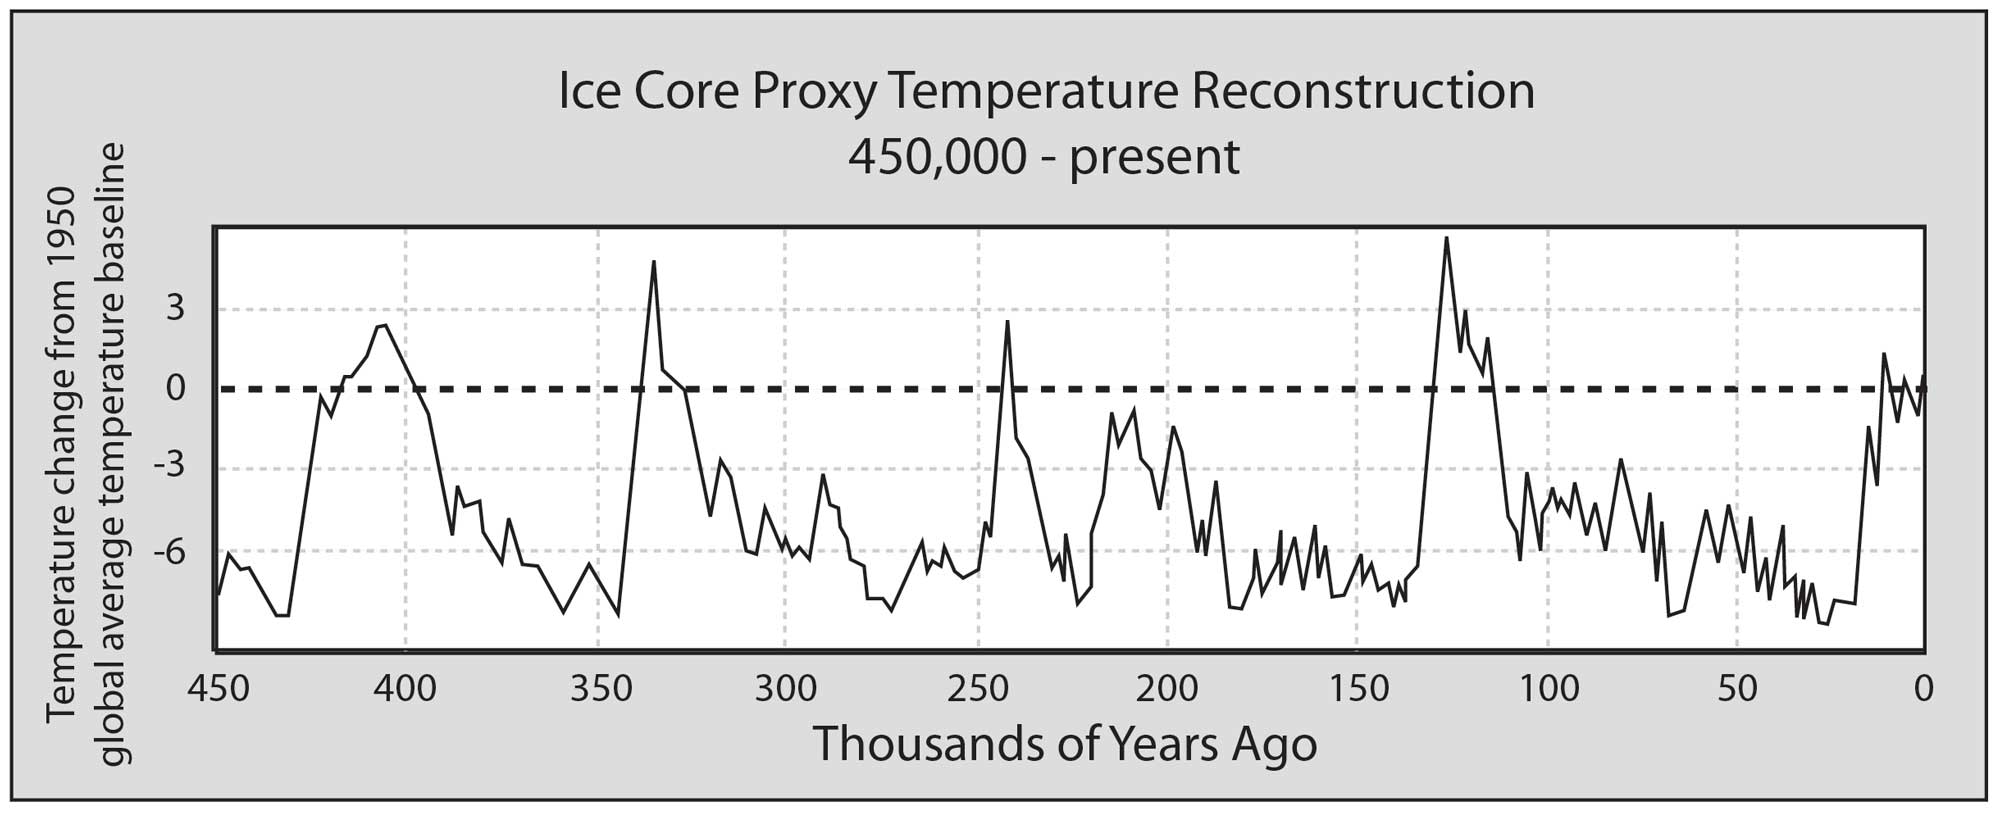 Plot showing changes in temperature over the past 450,000 years.